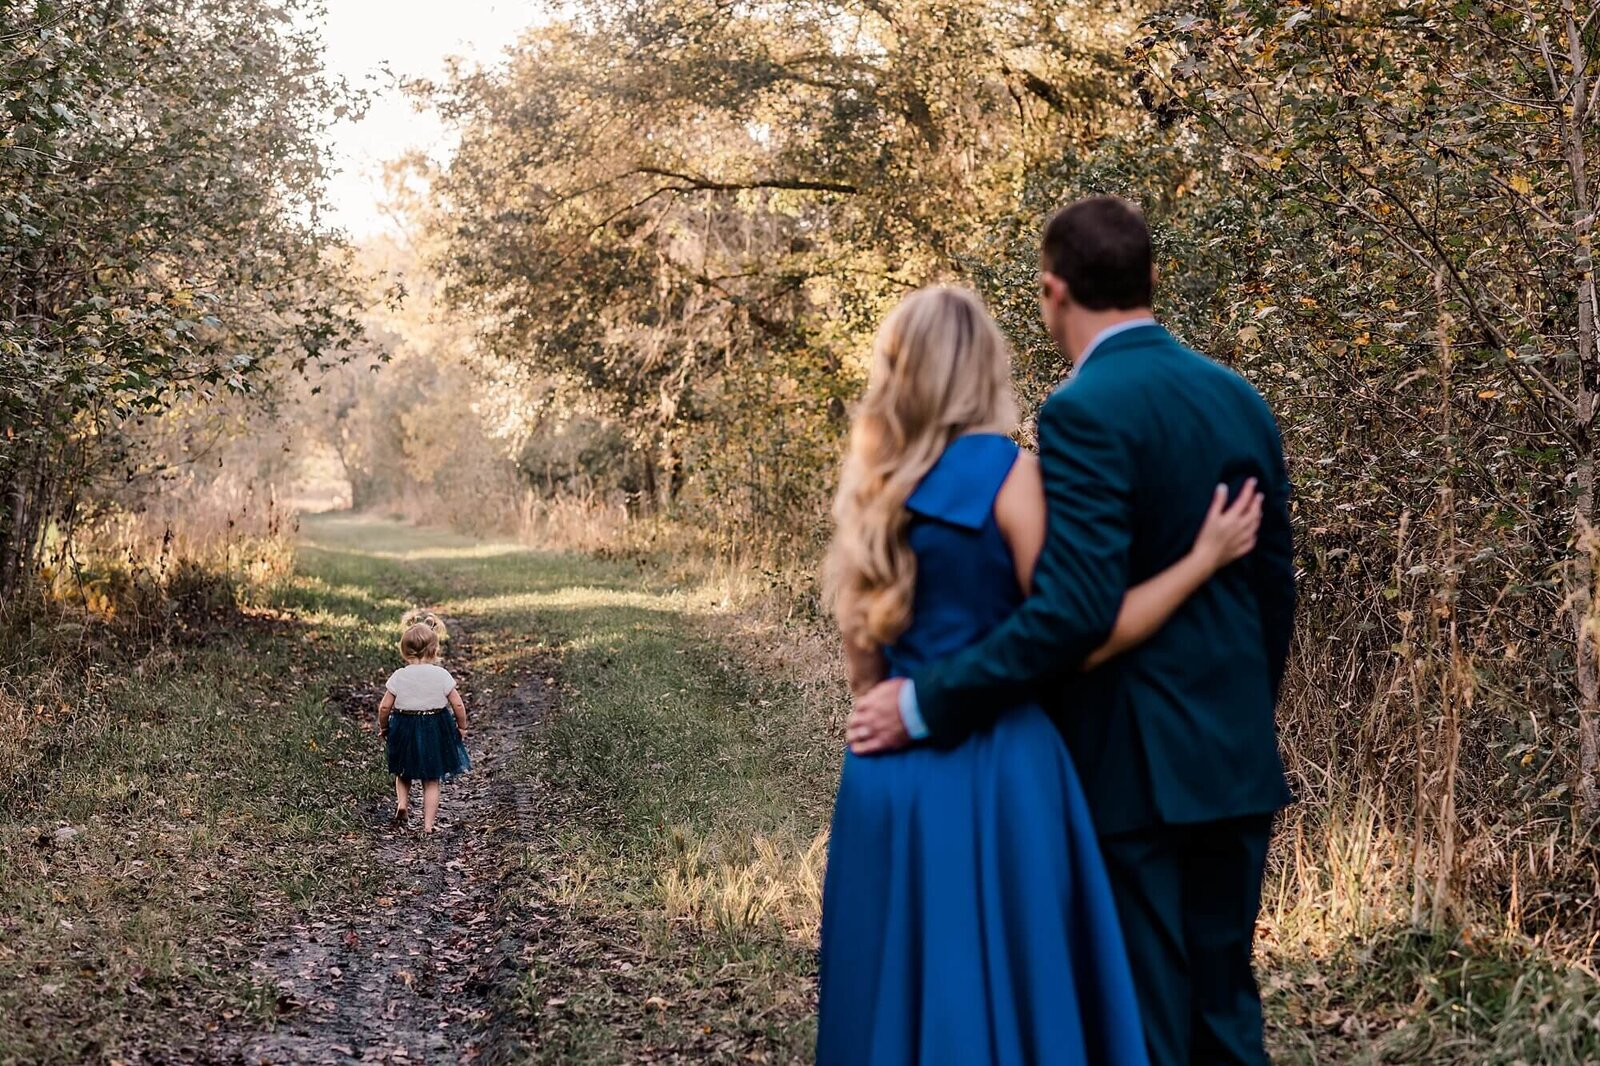 long-branch-park-family-session-orlando-haleigh-nicole-photography_0018